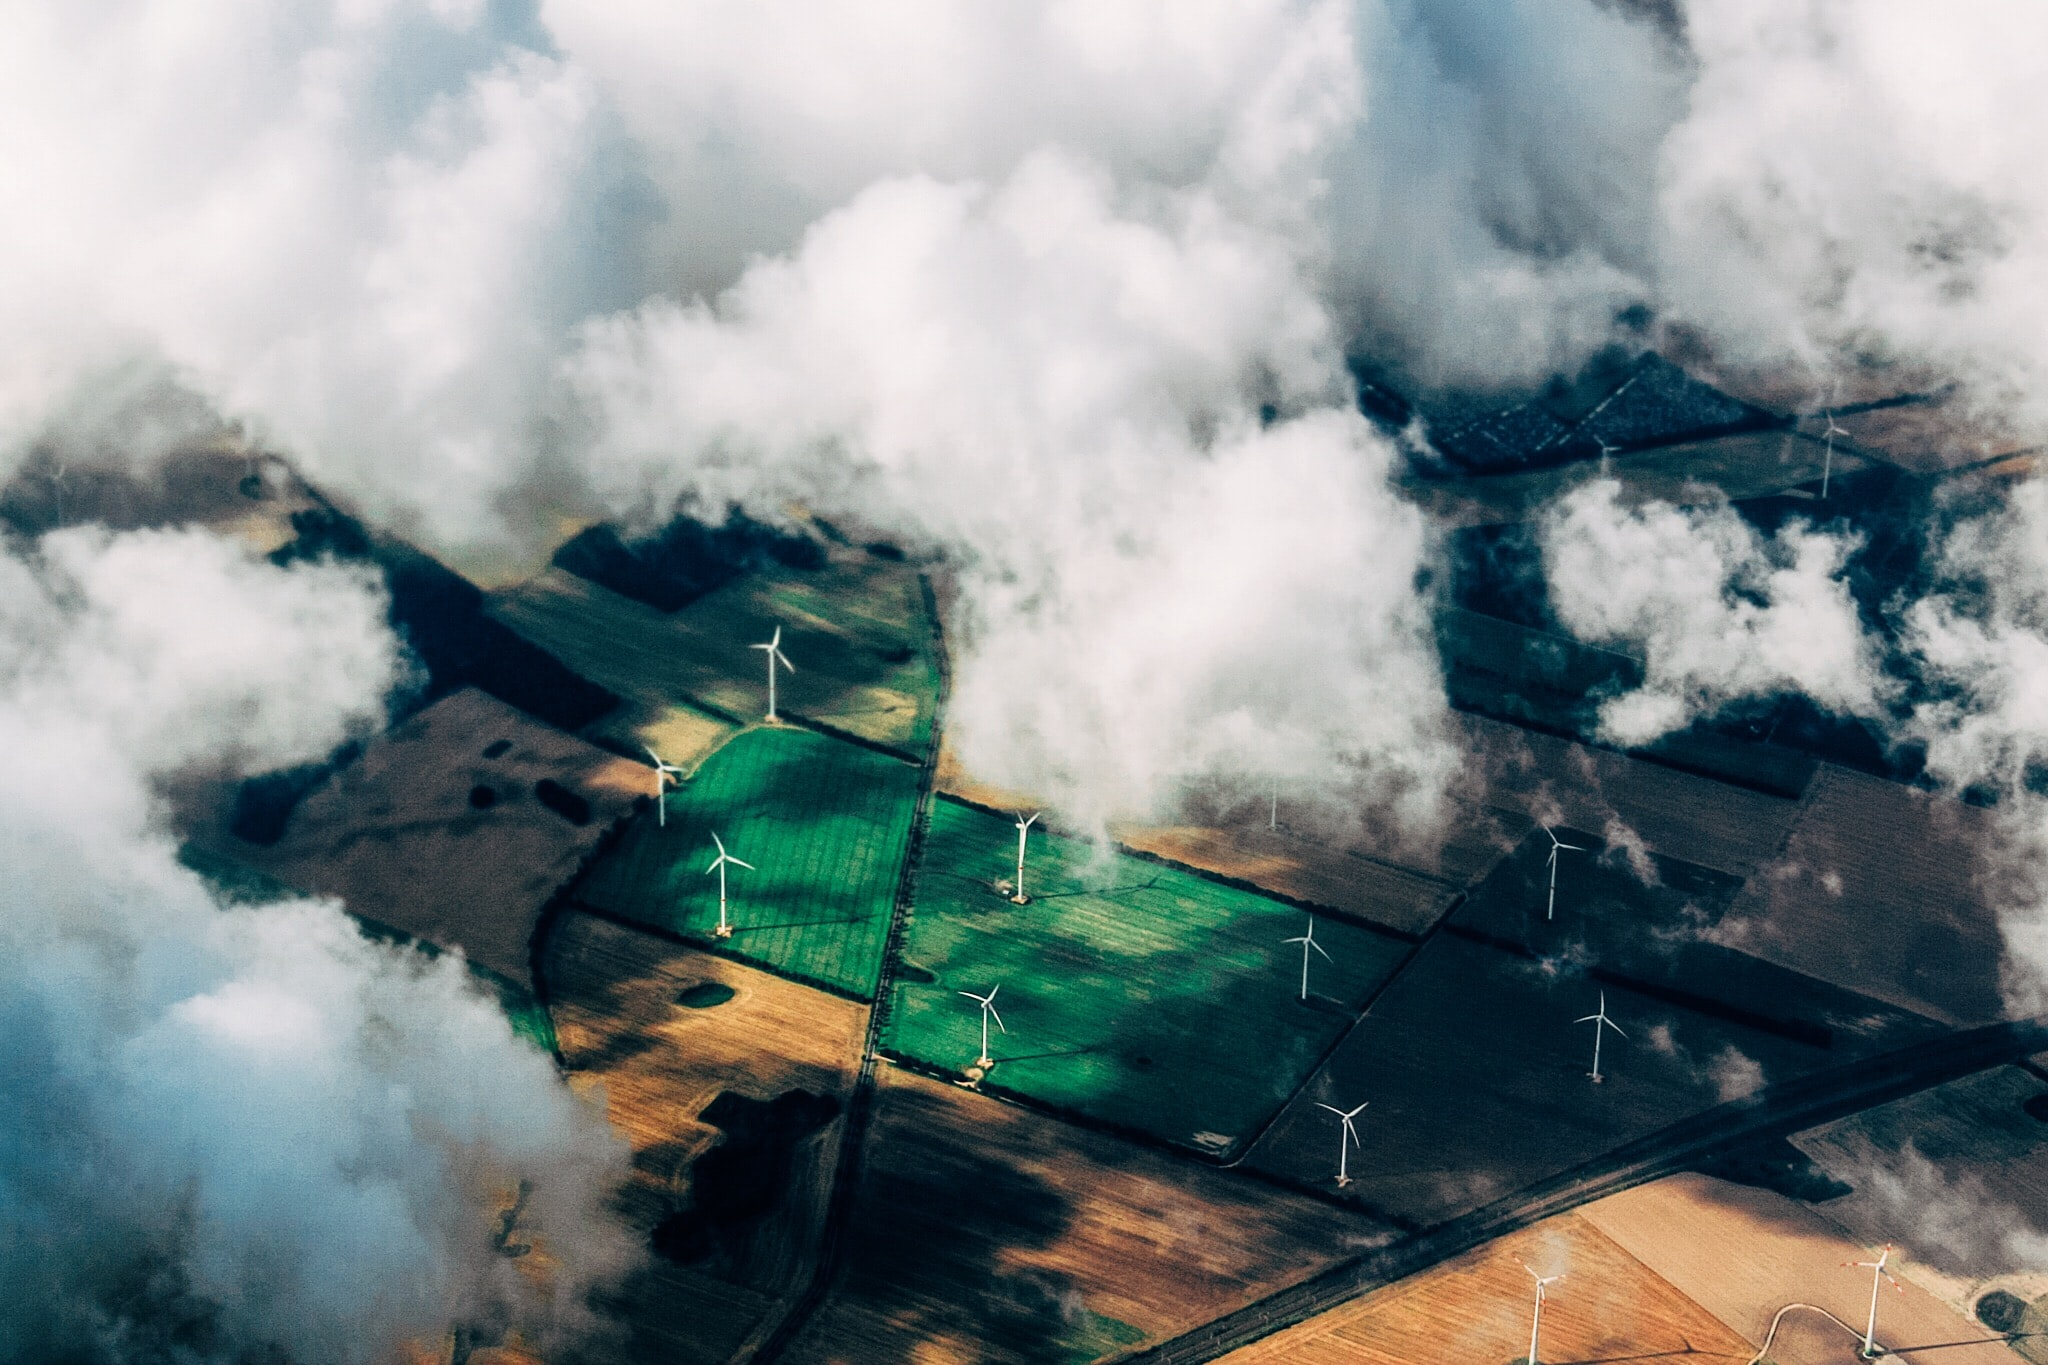 The frame peaks through white clouds and looks down on a series of fields with wind turbines.